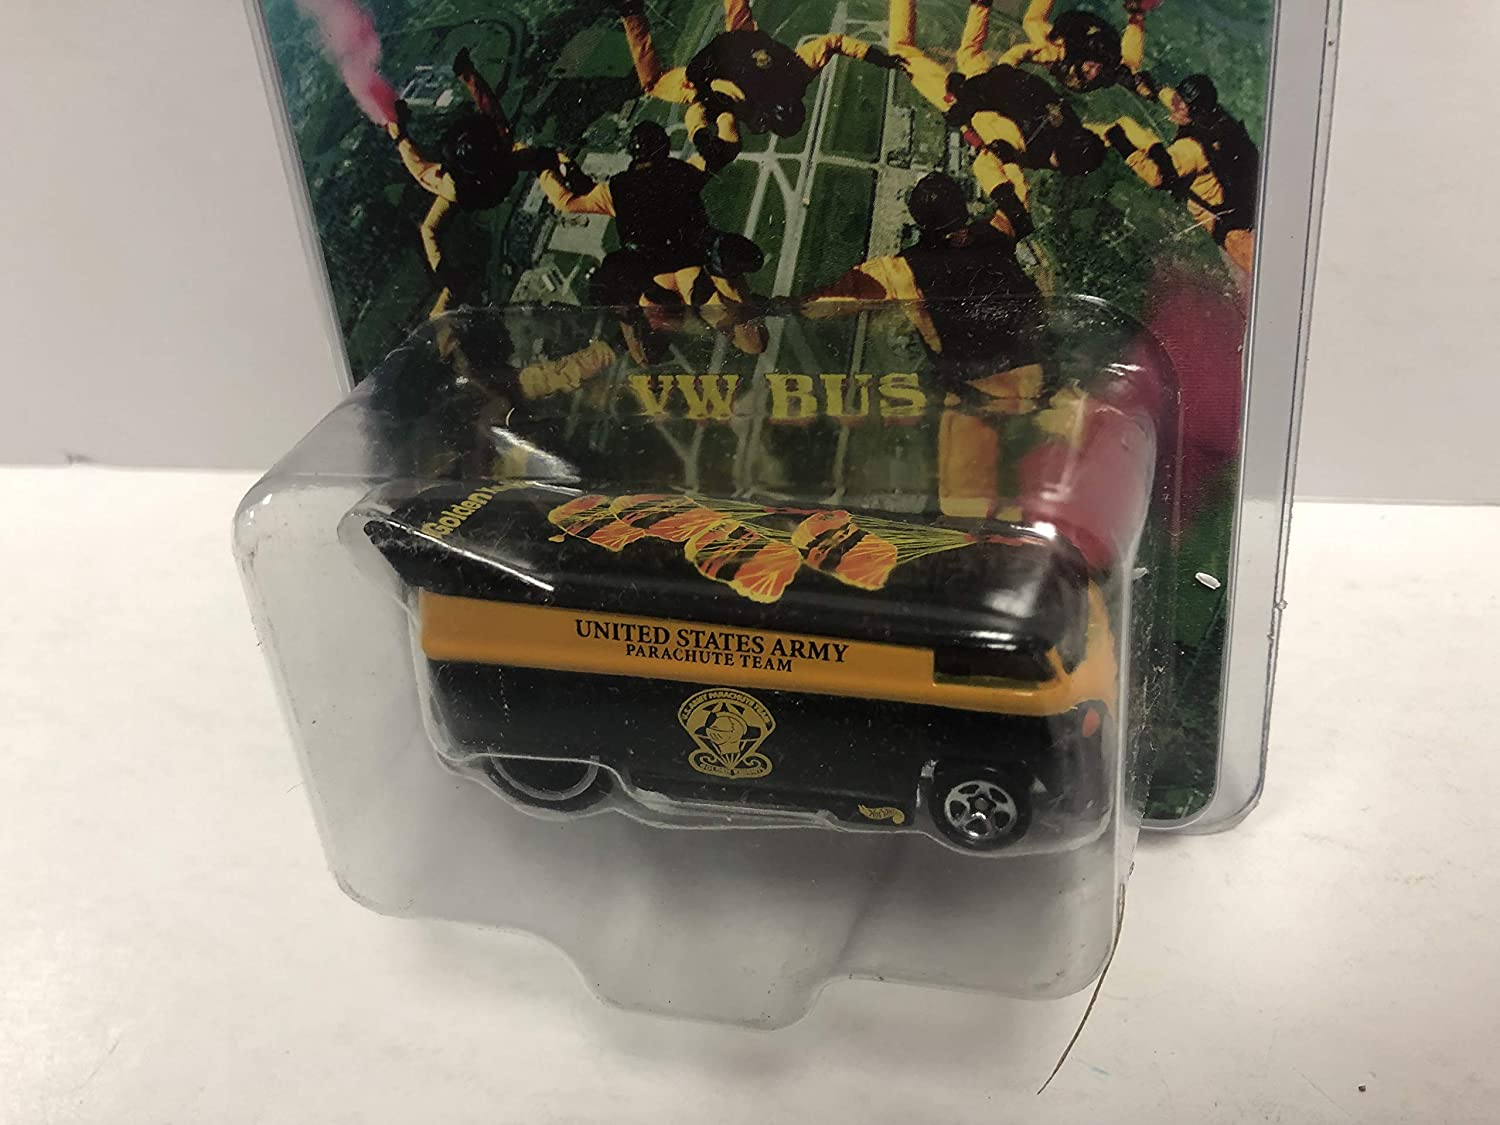 VW BUS Hot Wheels Special Edition United States Army Golden Knights diecast #22488 with protector case